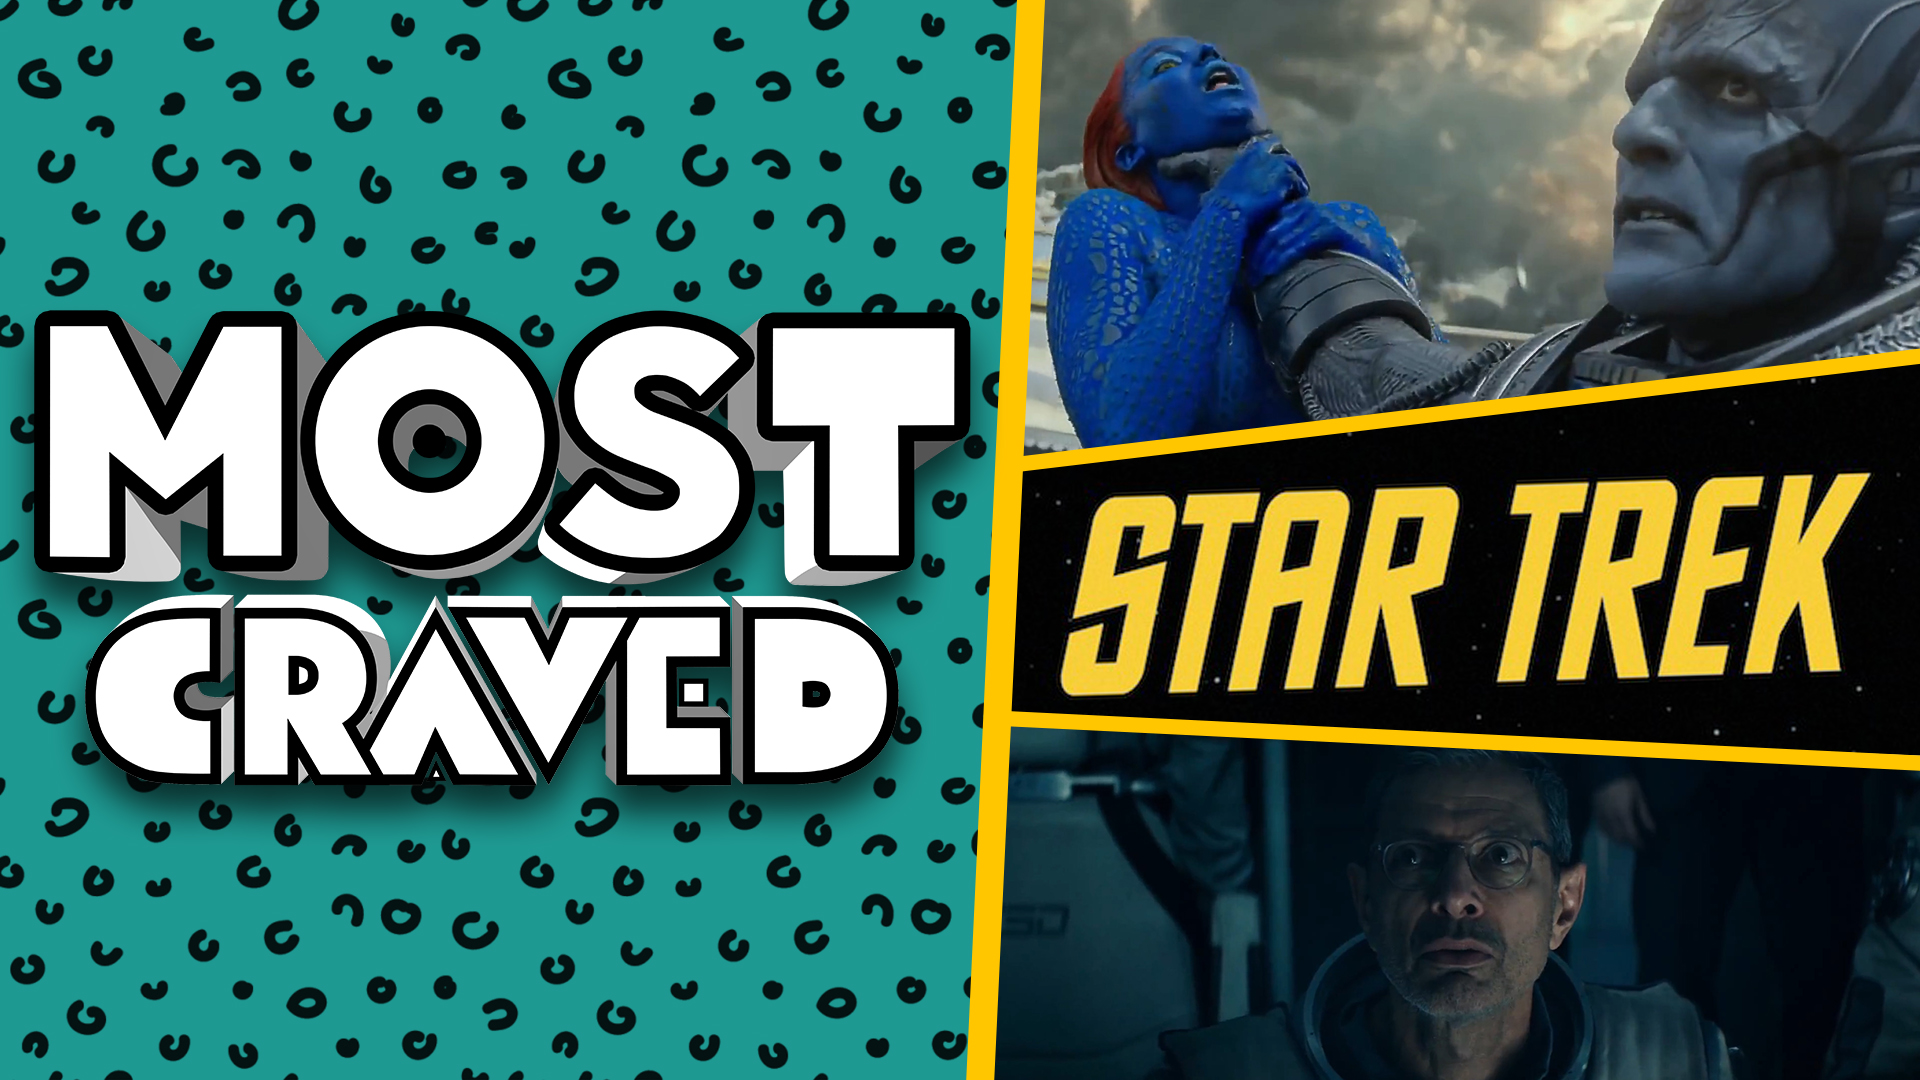 New Star Trek and more on this week's most craved!